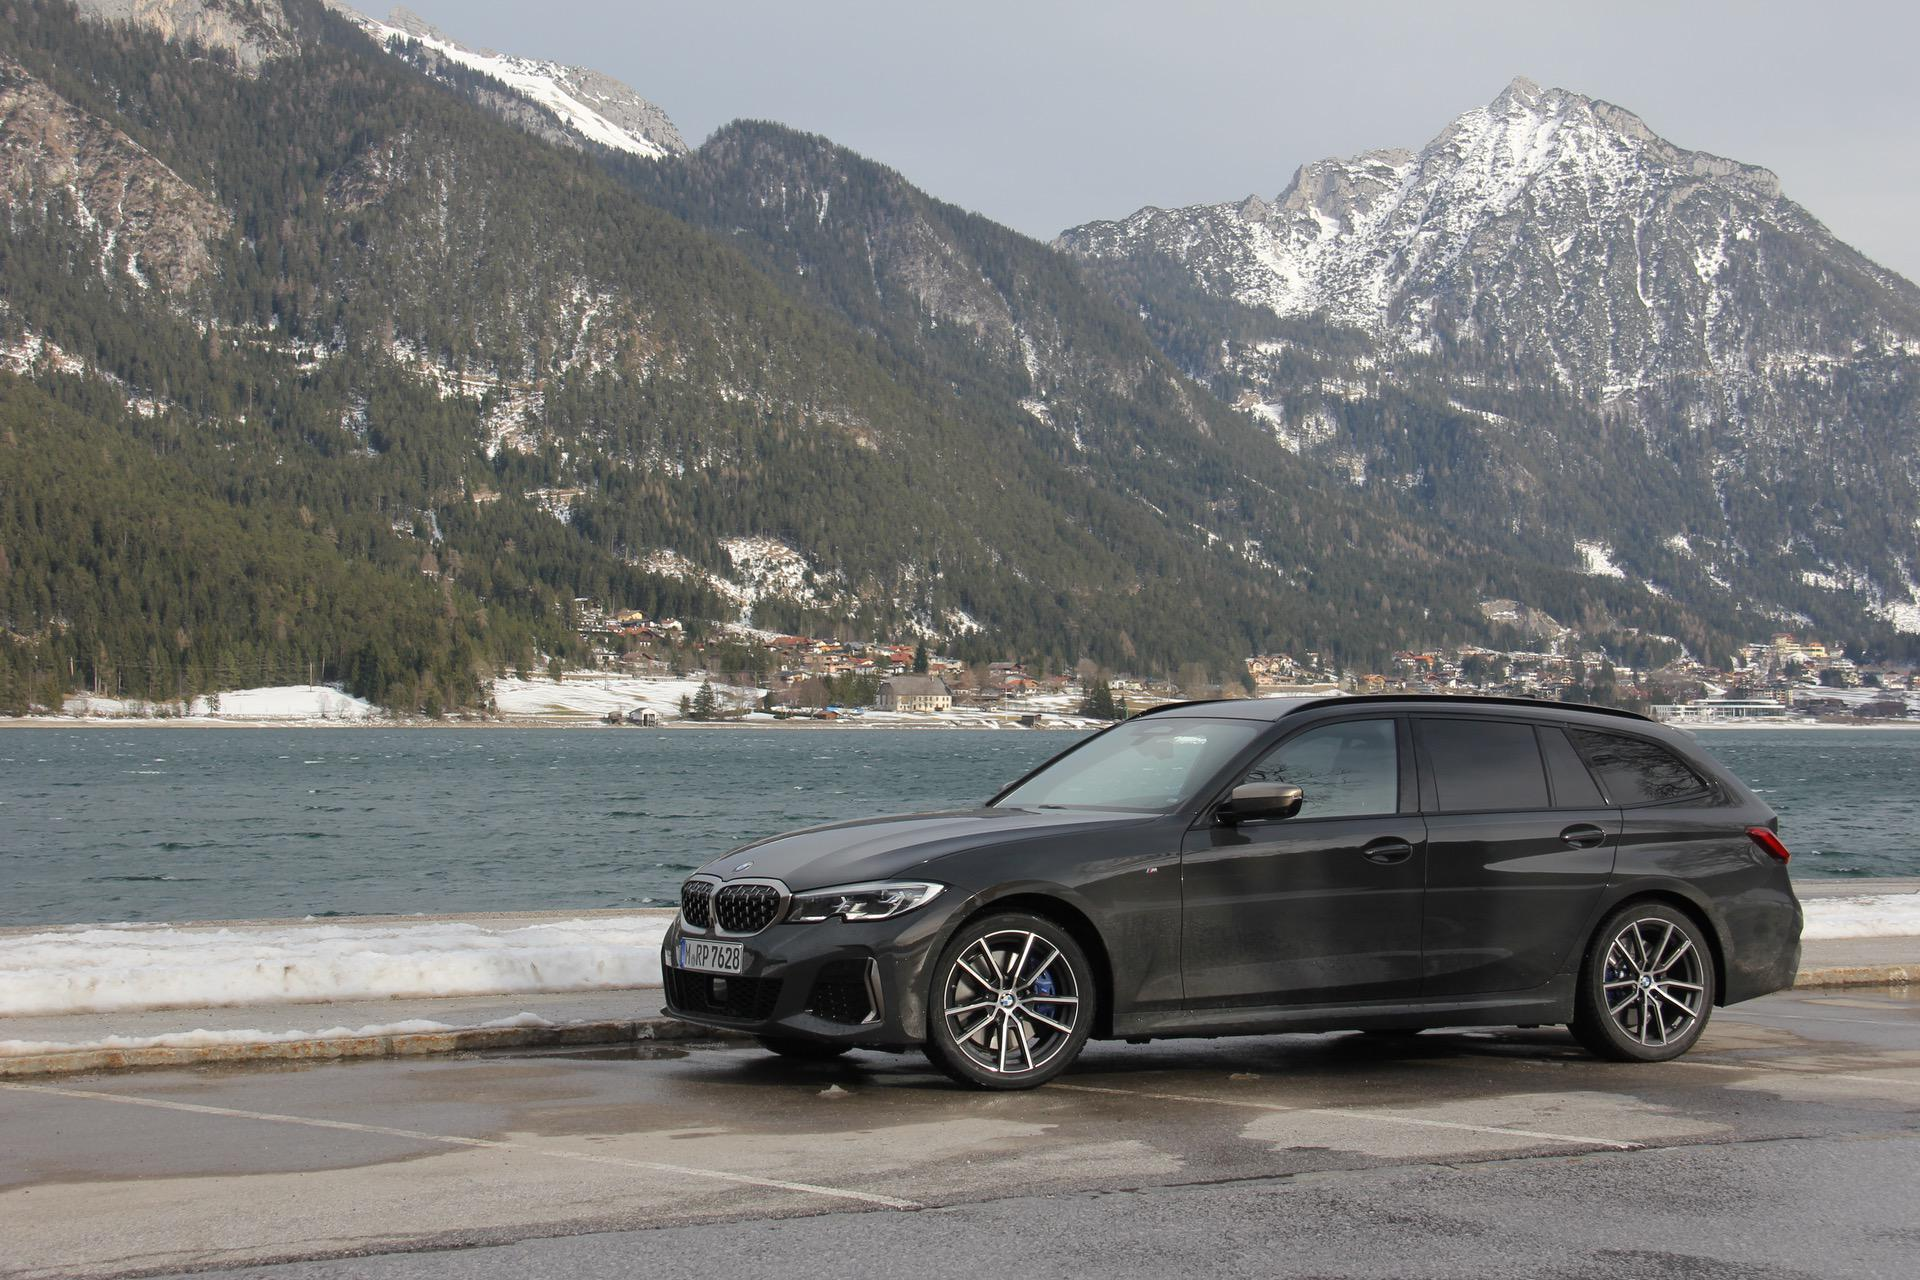 TEST DRIVE: 2020 BMW M340i xDrive Touring – The Ideal BMW